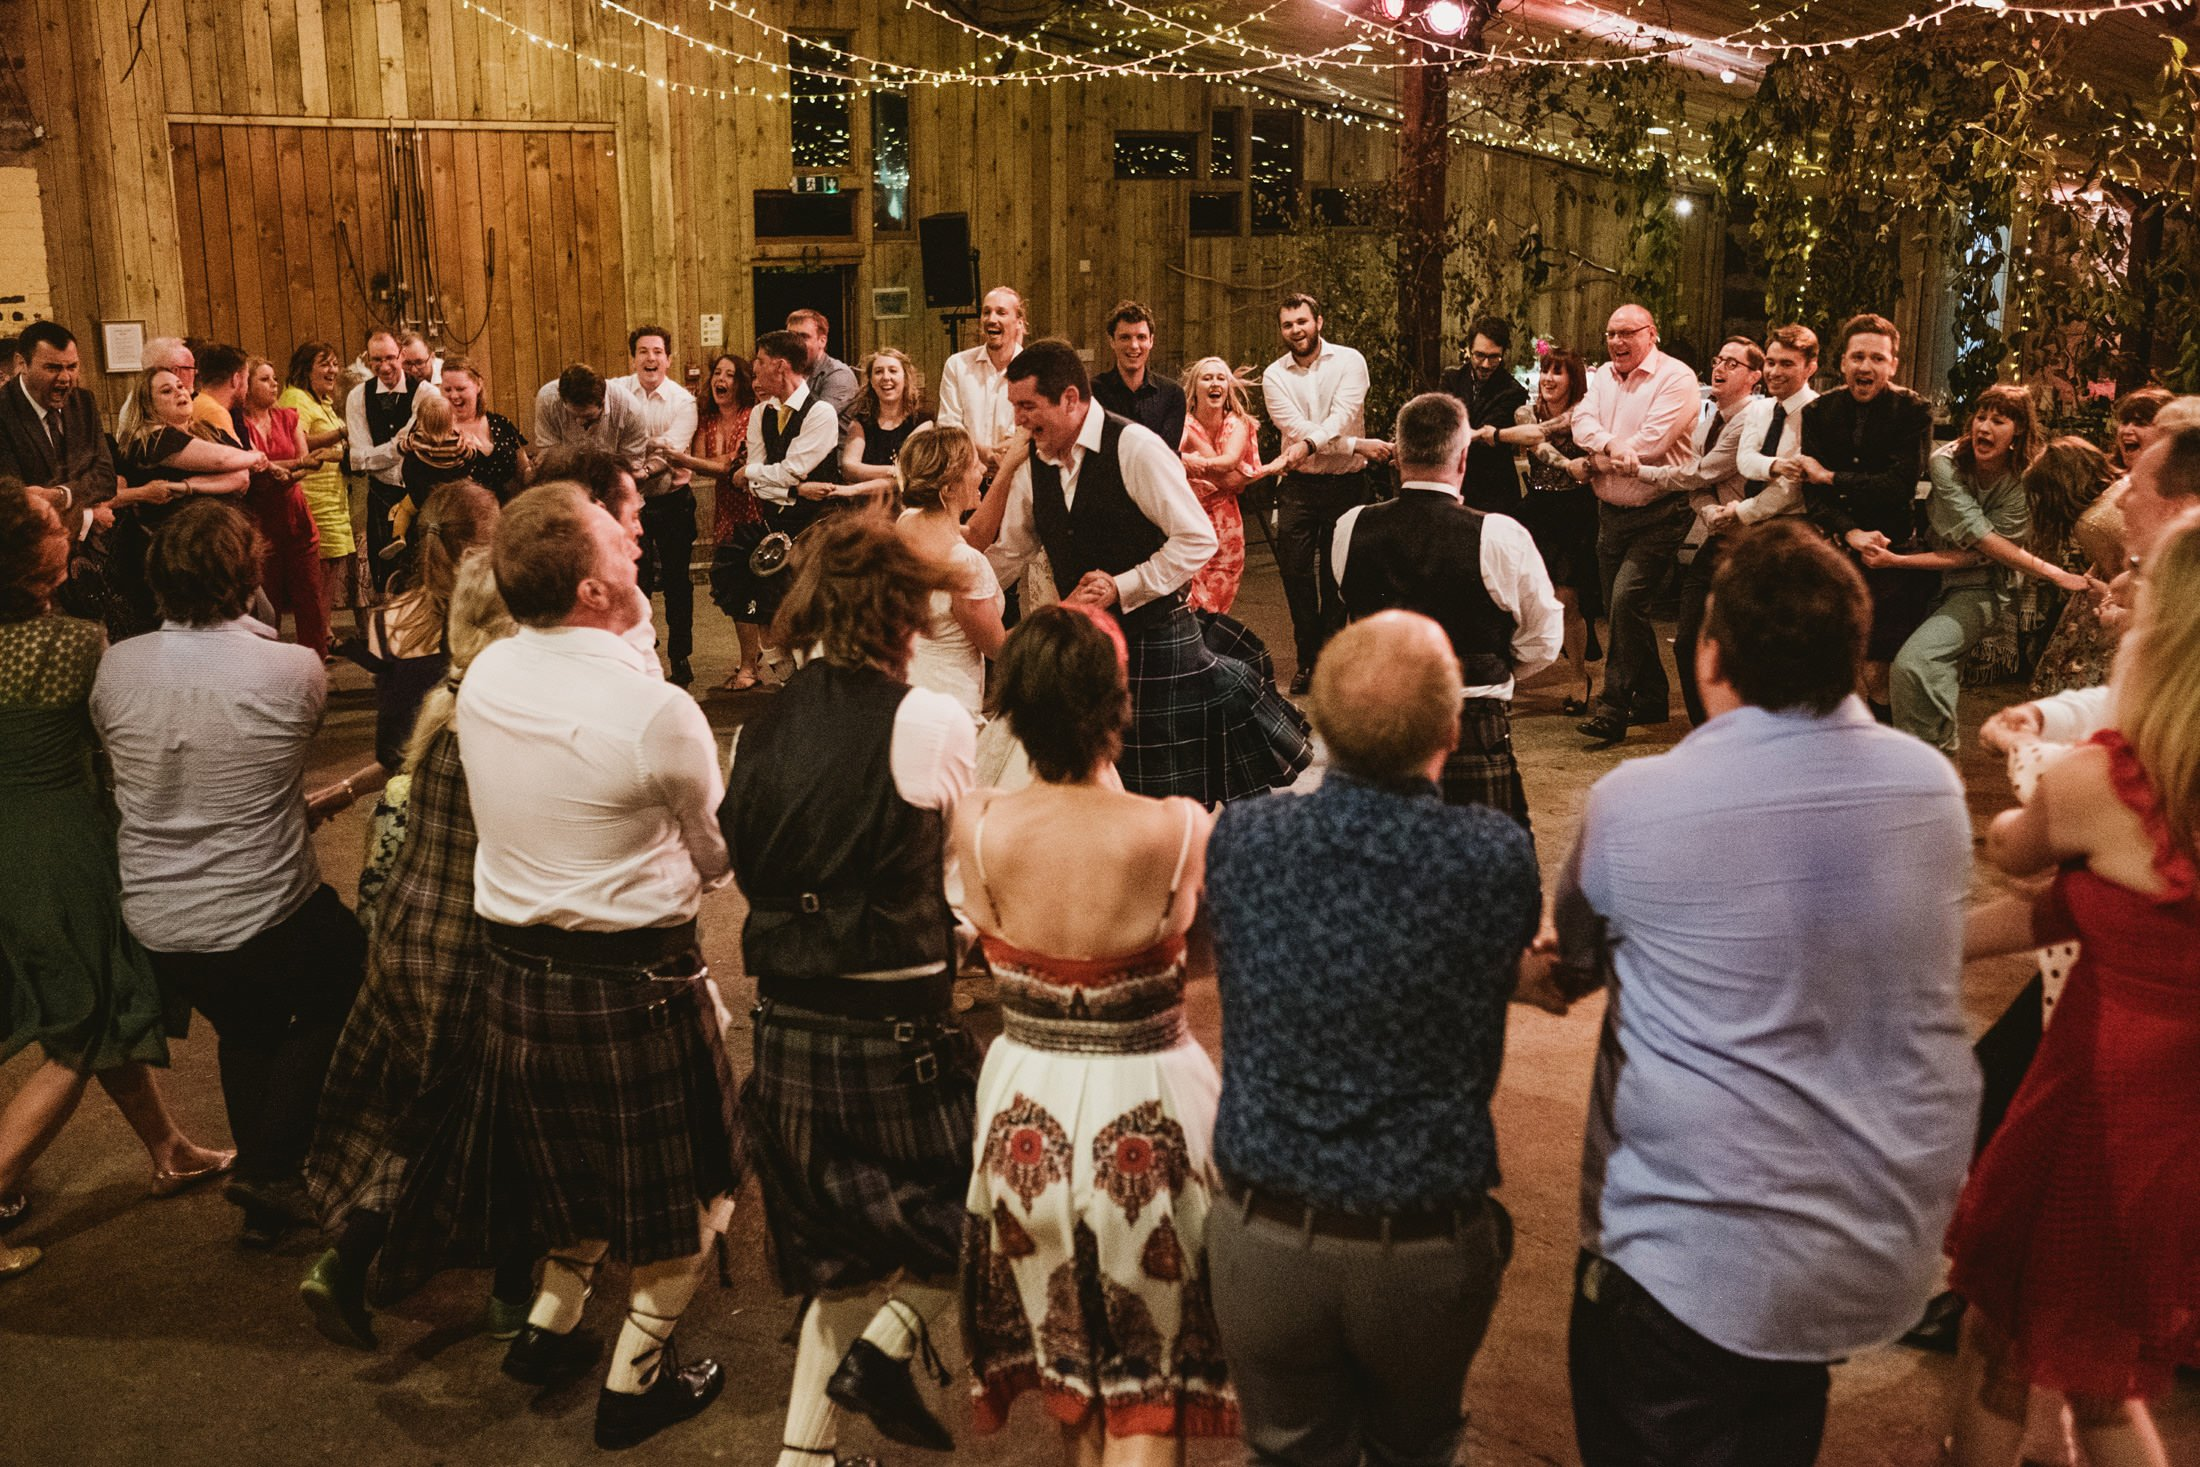 wedding guests celebrating in the barn